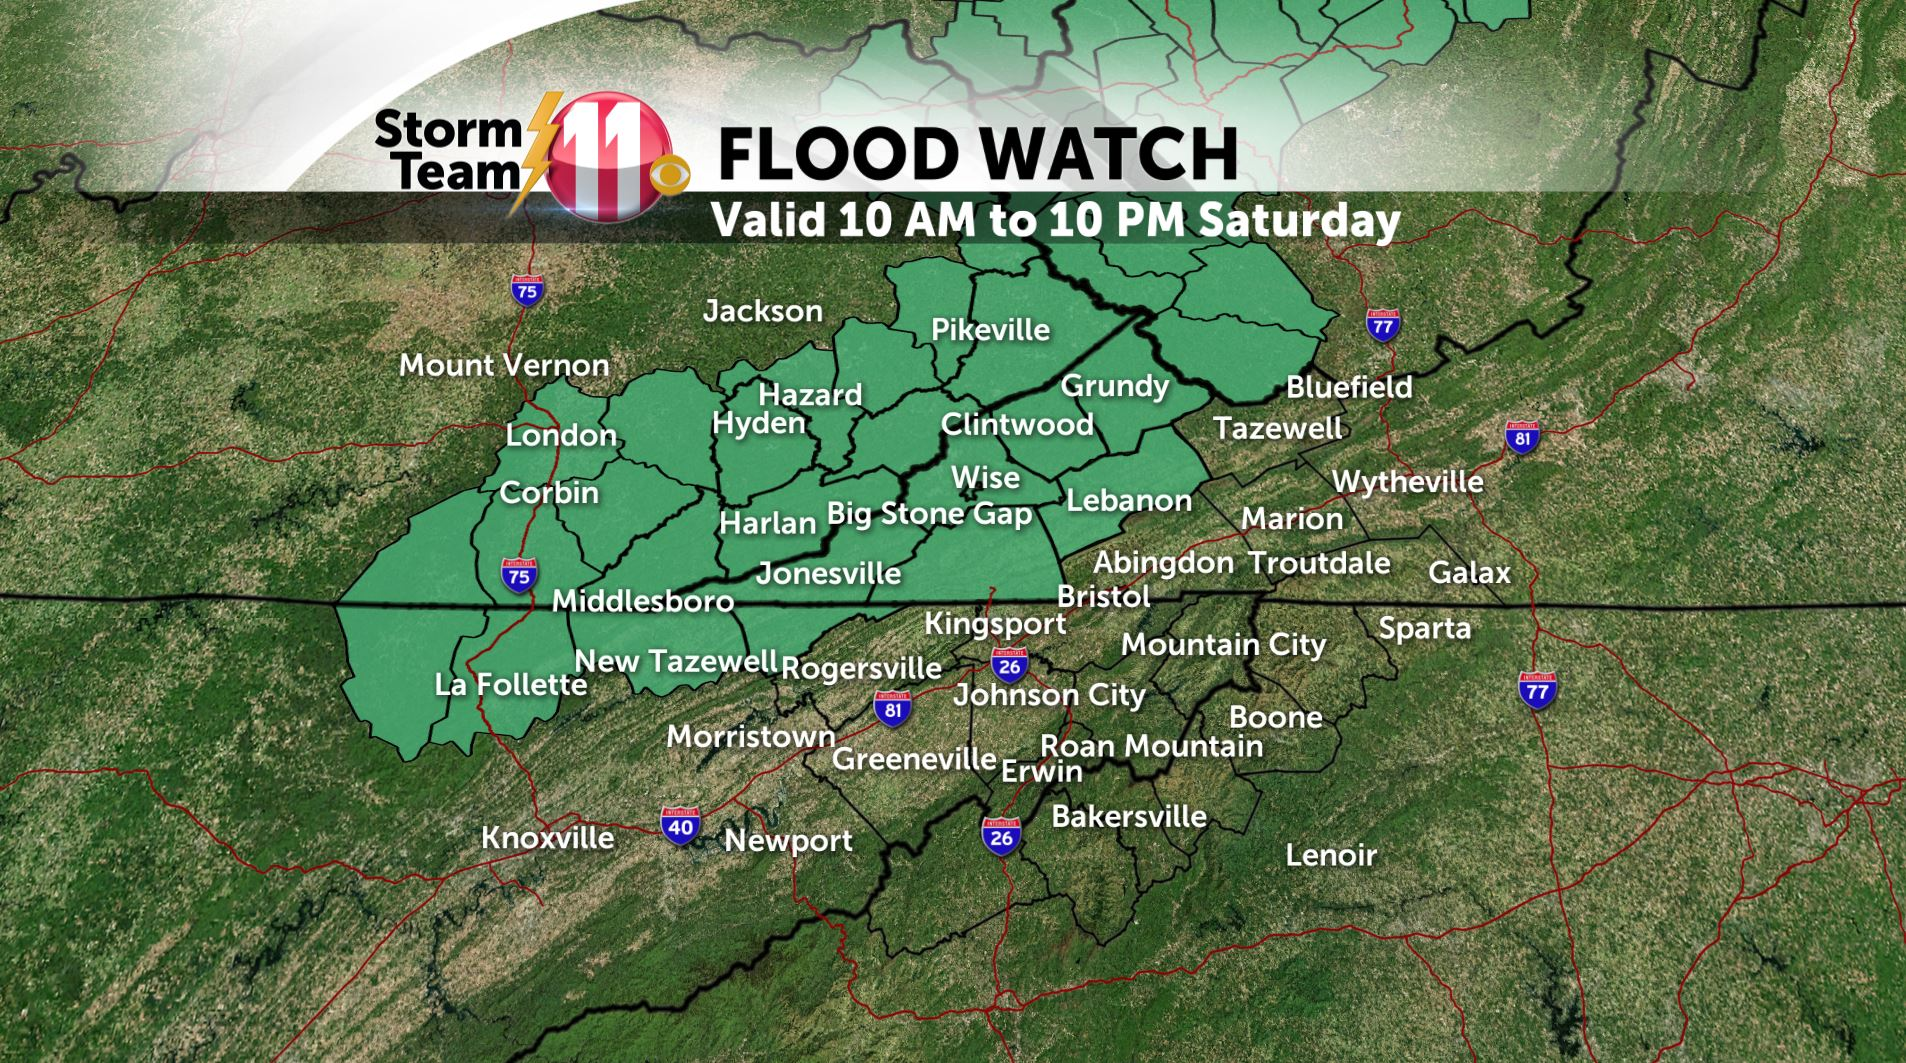 Mark's Weather Blog: Flood Watch for Saturday - Warming up